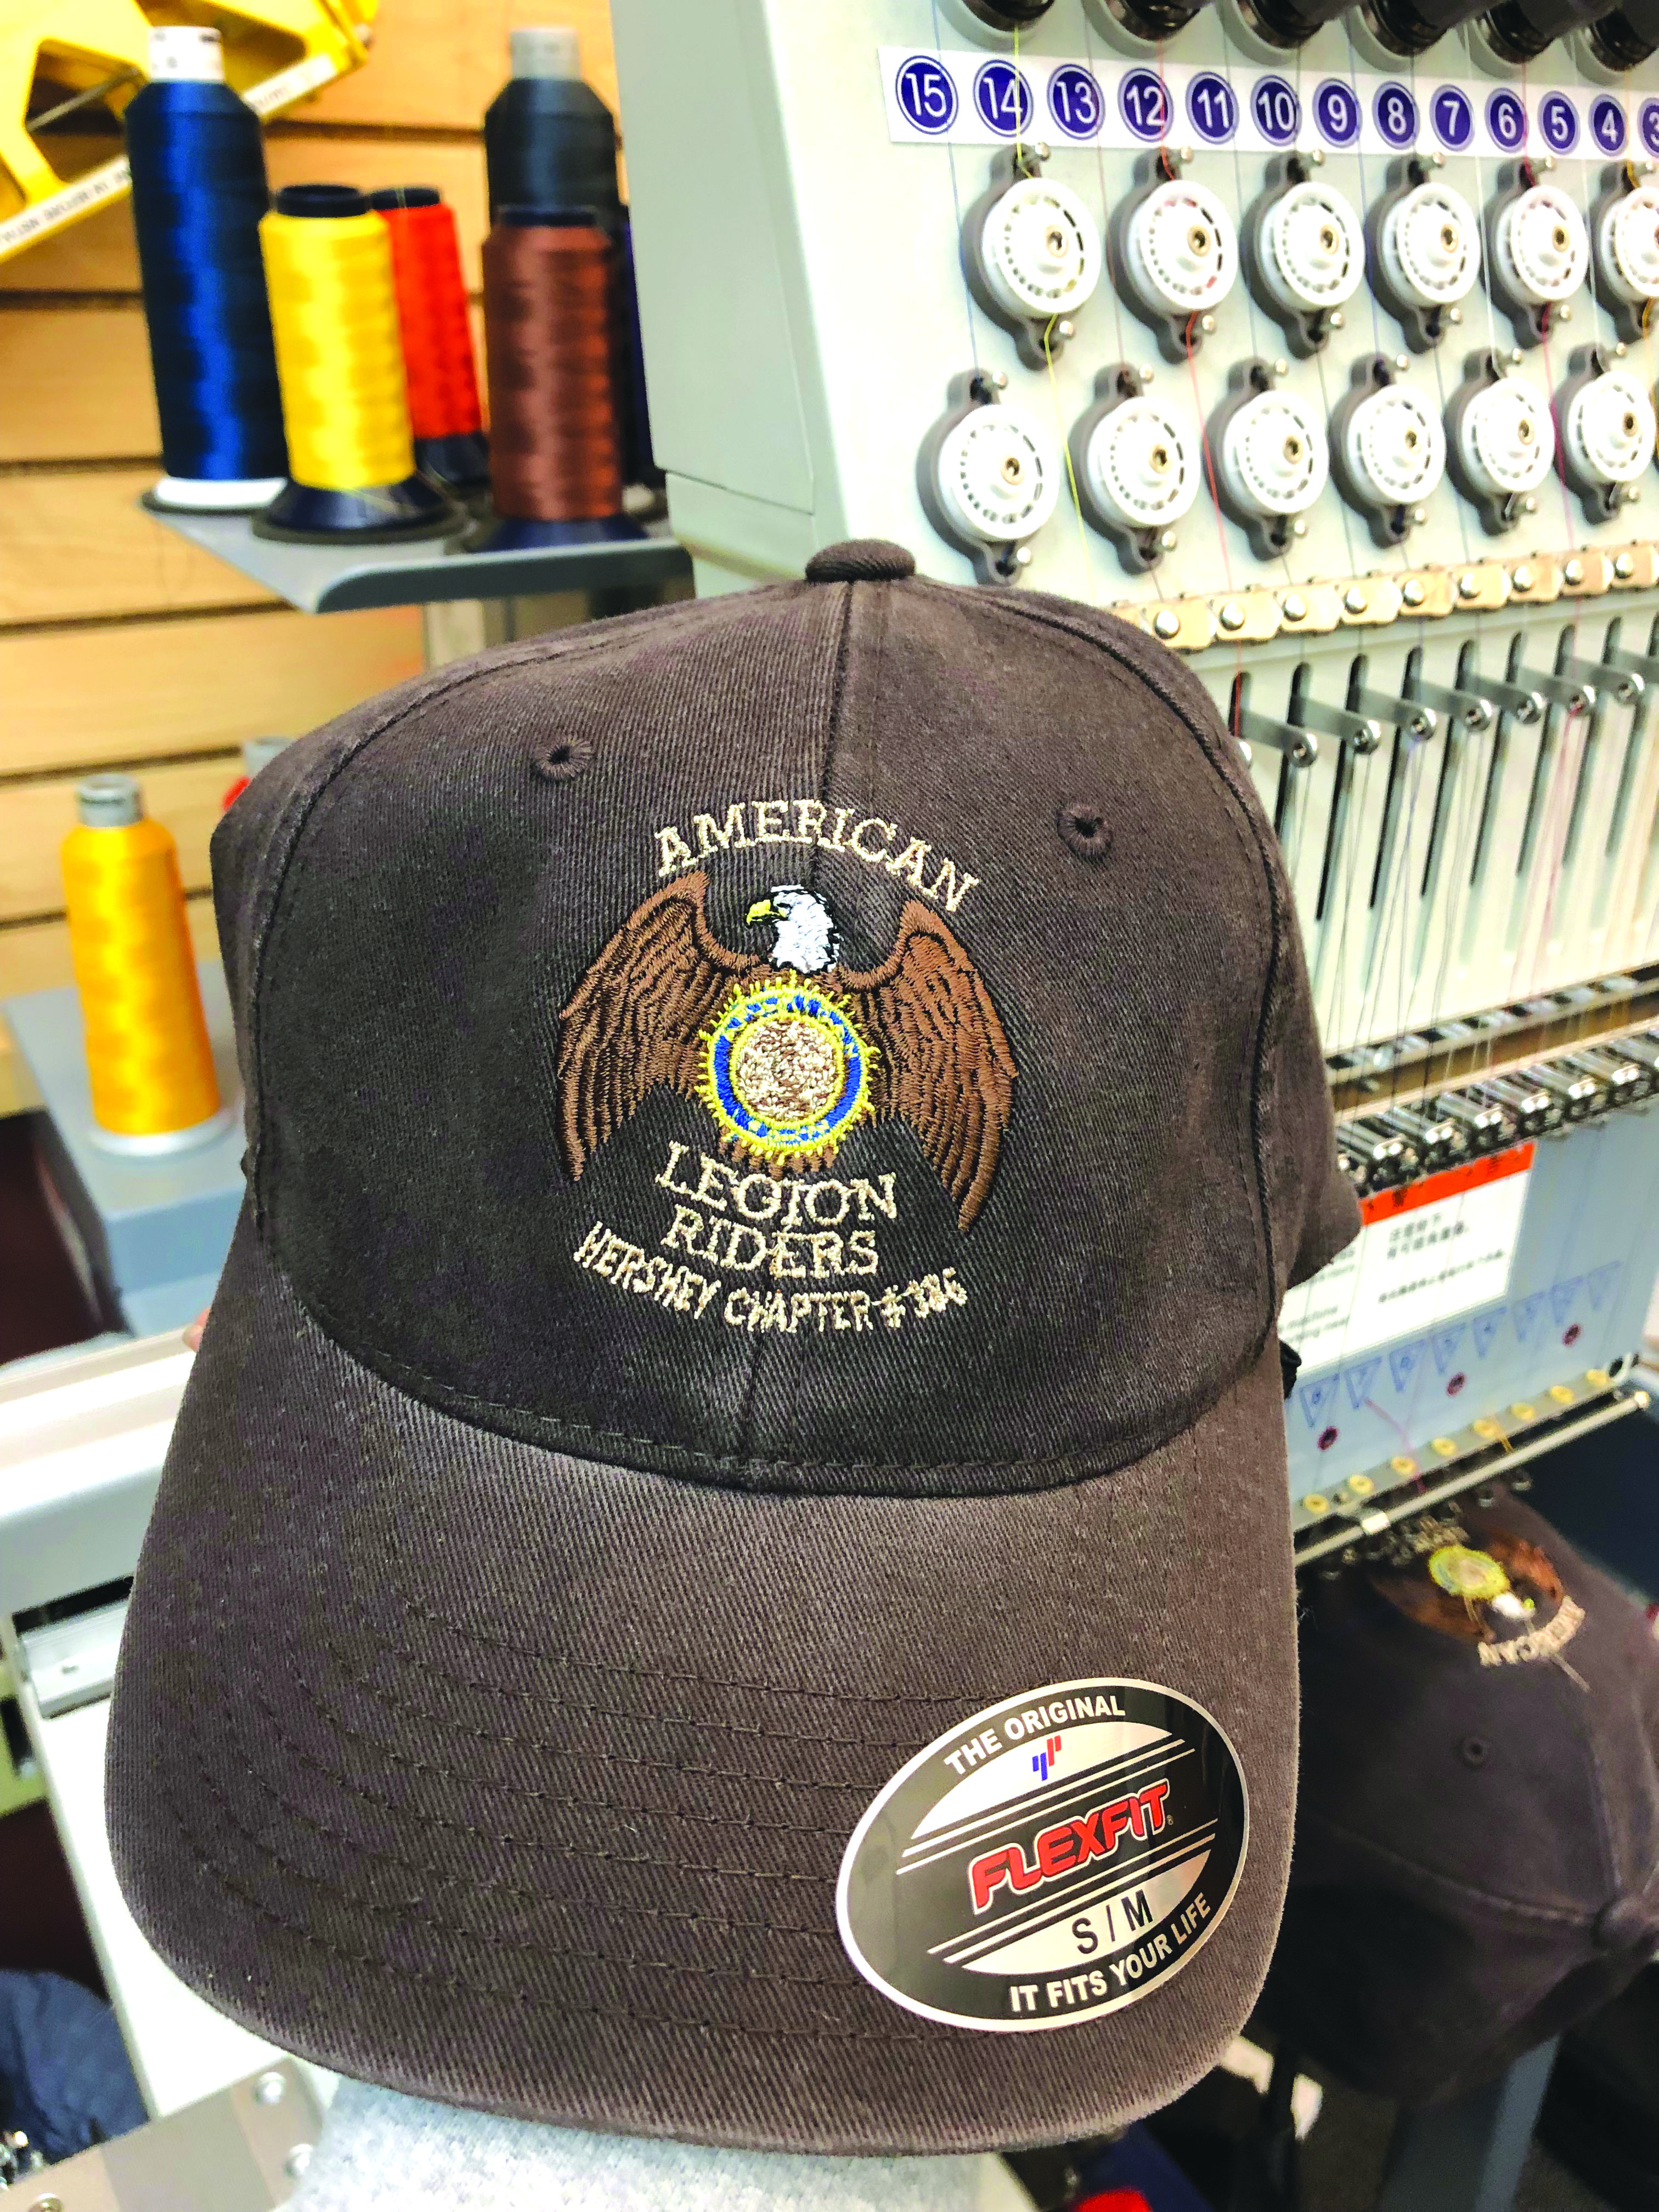 Local American Legion Riders Hershey Chapter  386.They provided the logo 29a0c8fe5b3